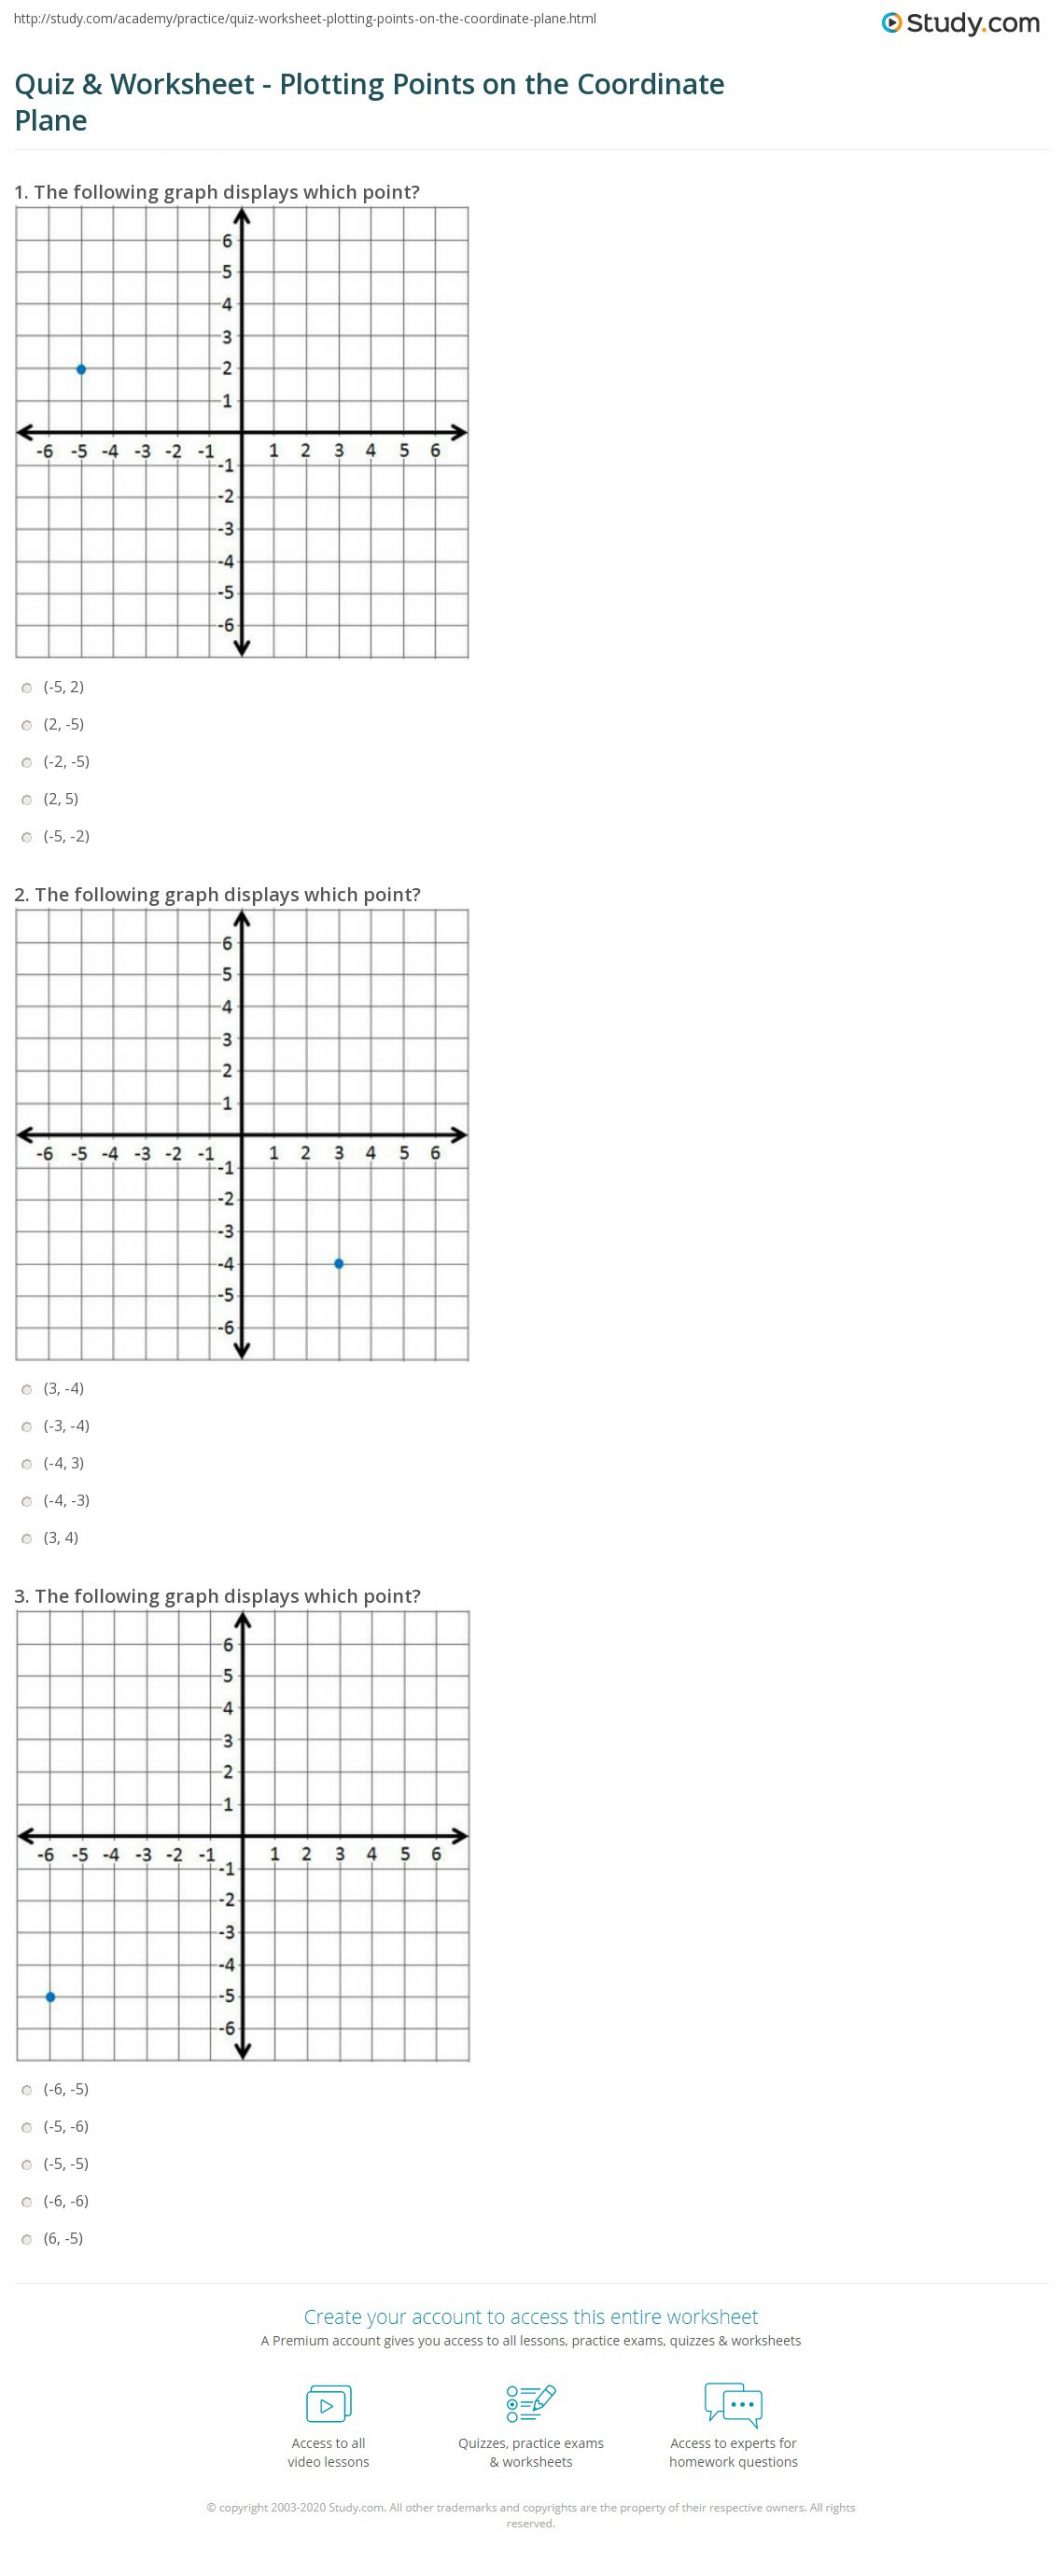 Coordinate Plane Worksheets Middle School Quiz & Worksheet Plotting Points On the Coordinate Plane